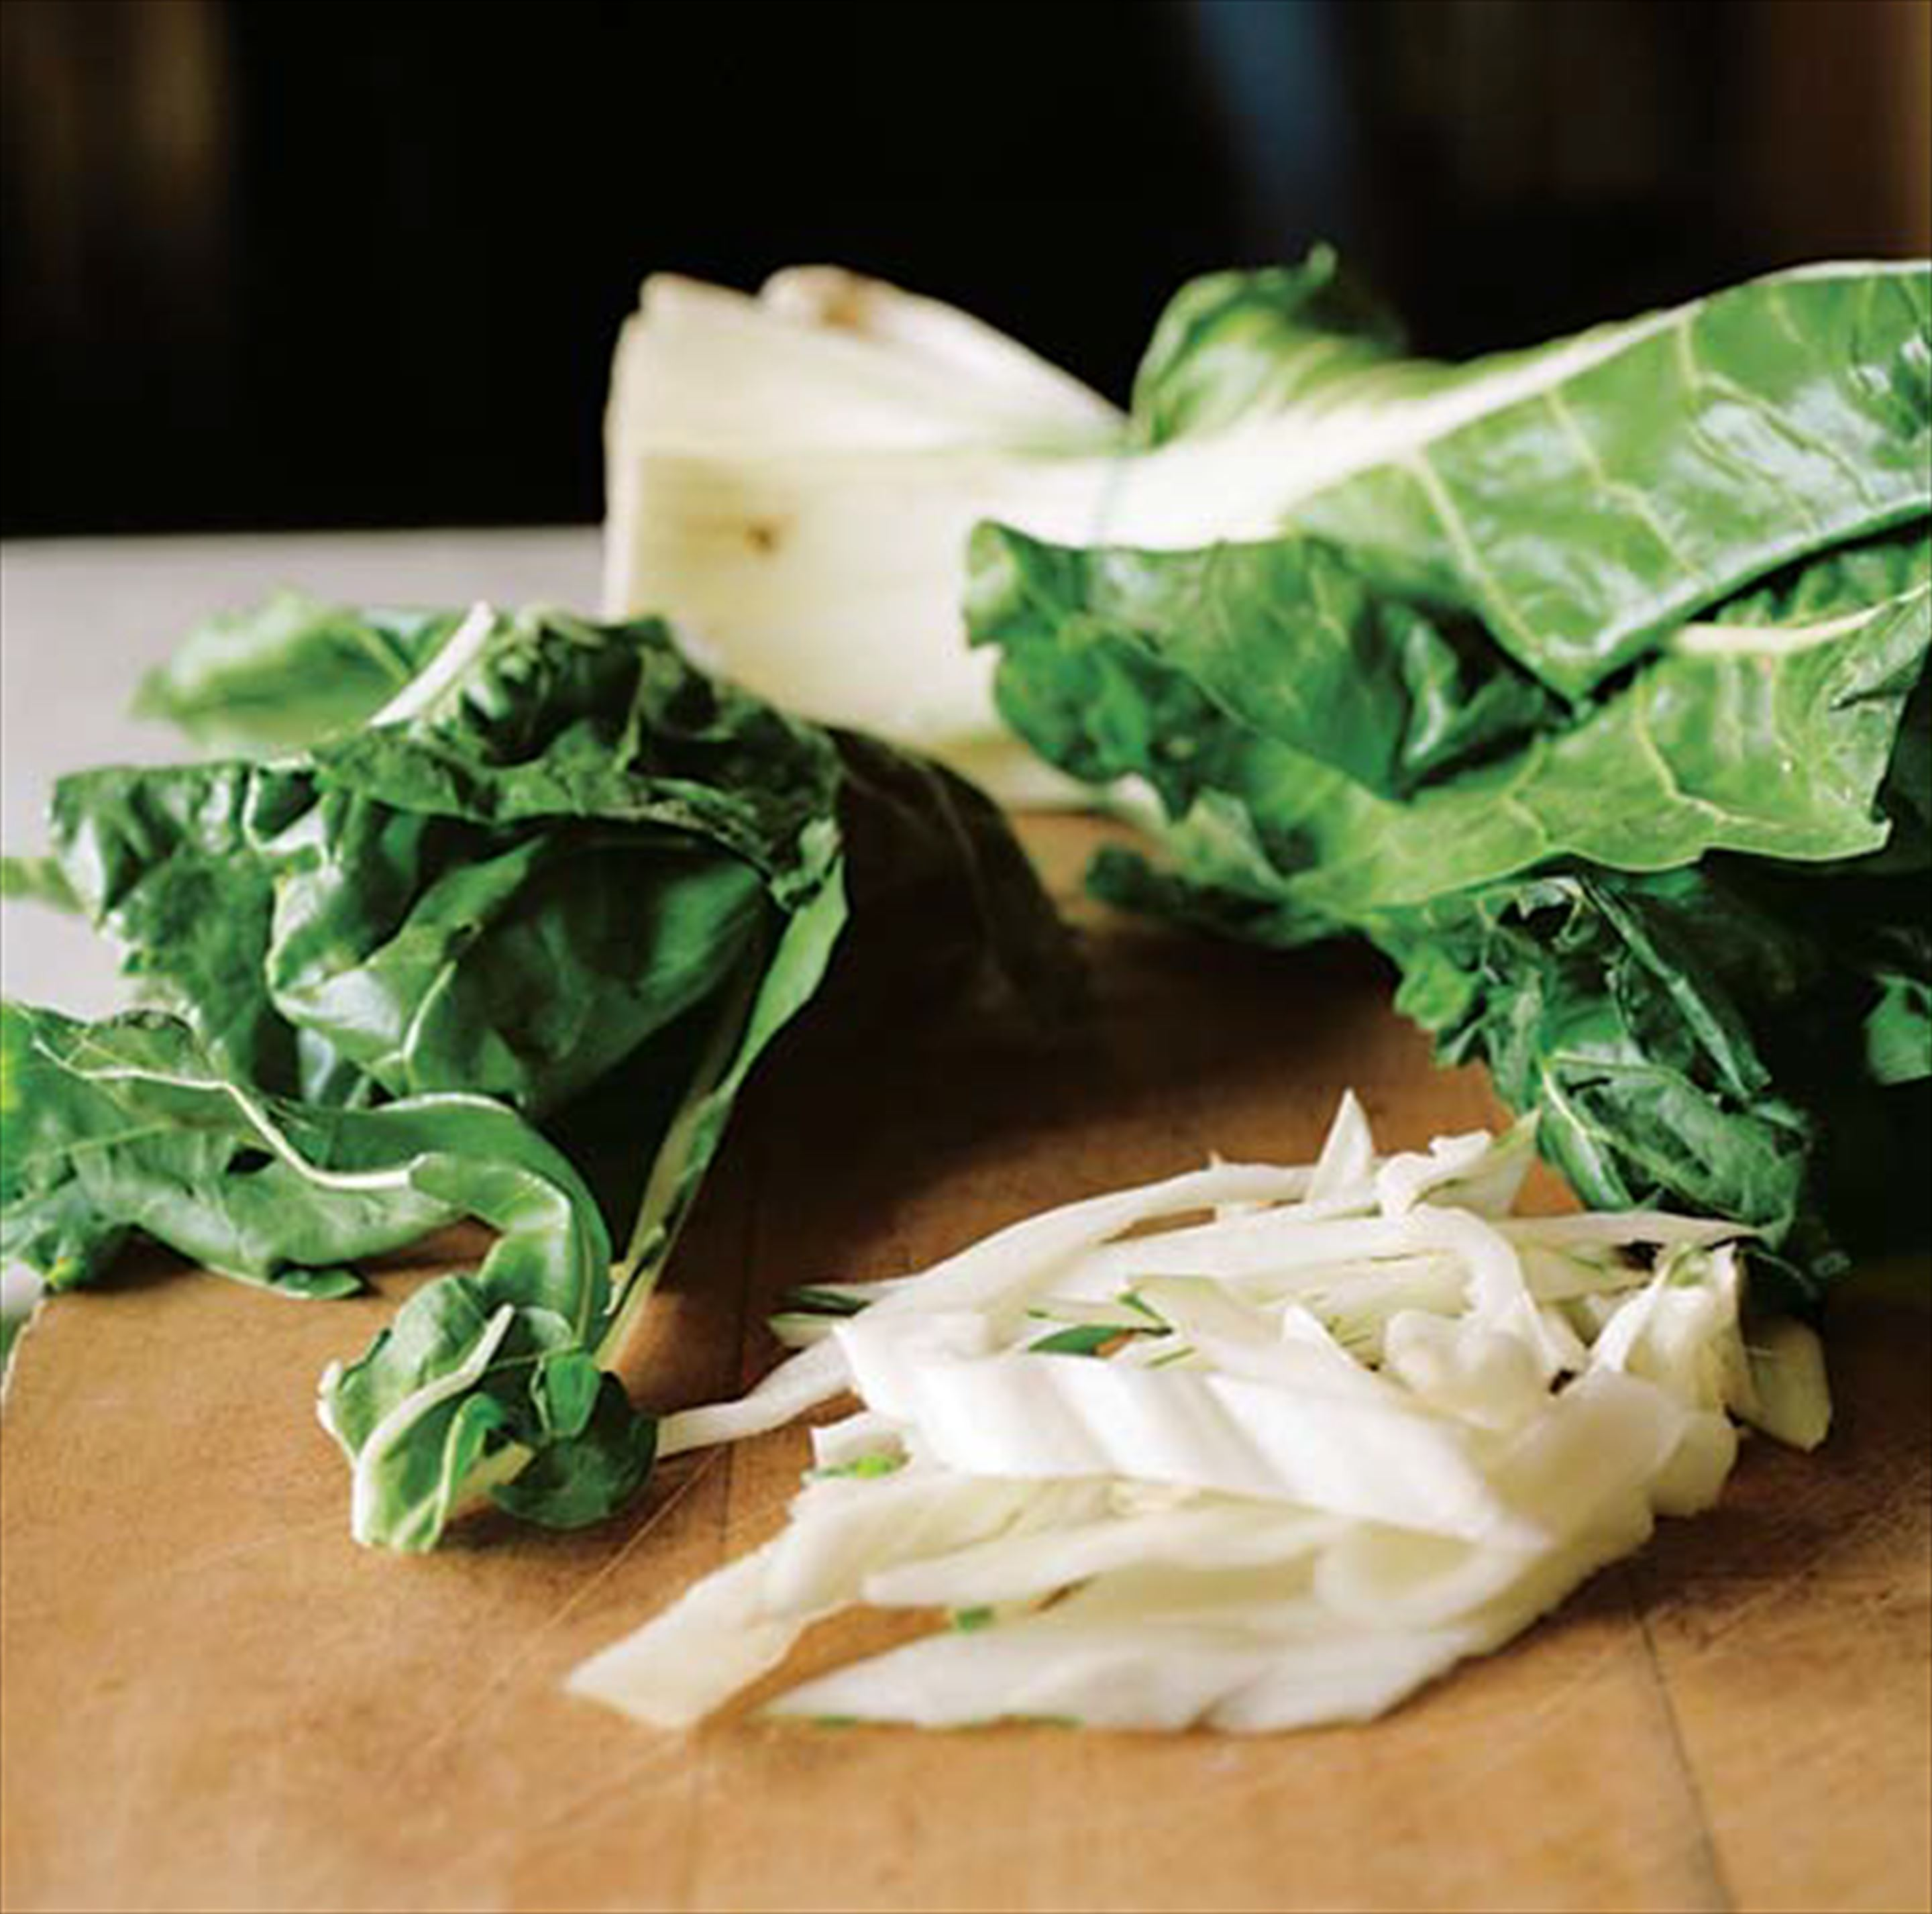 Slow-cooked chard